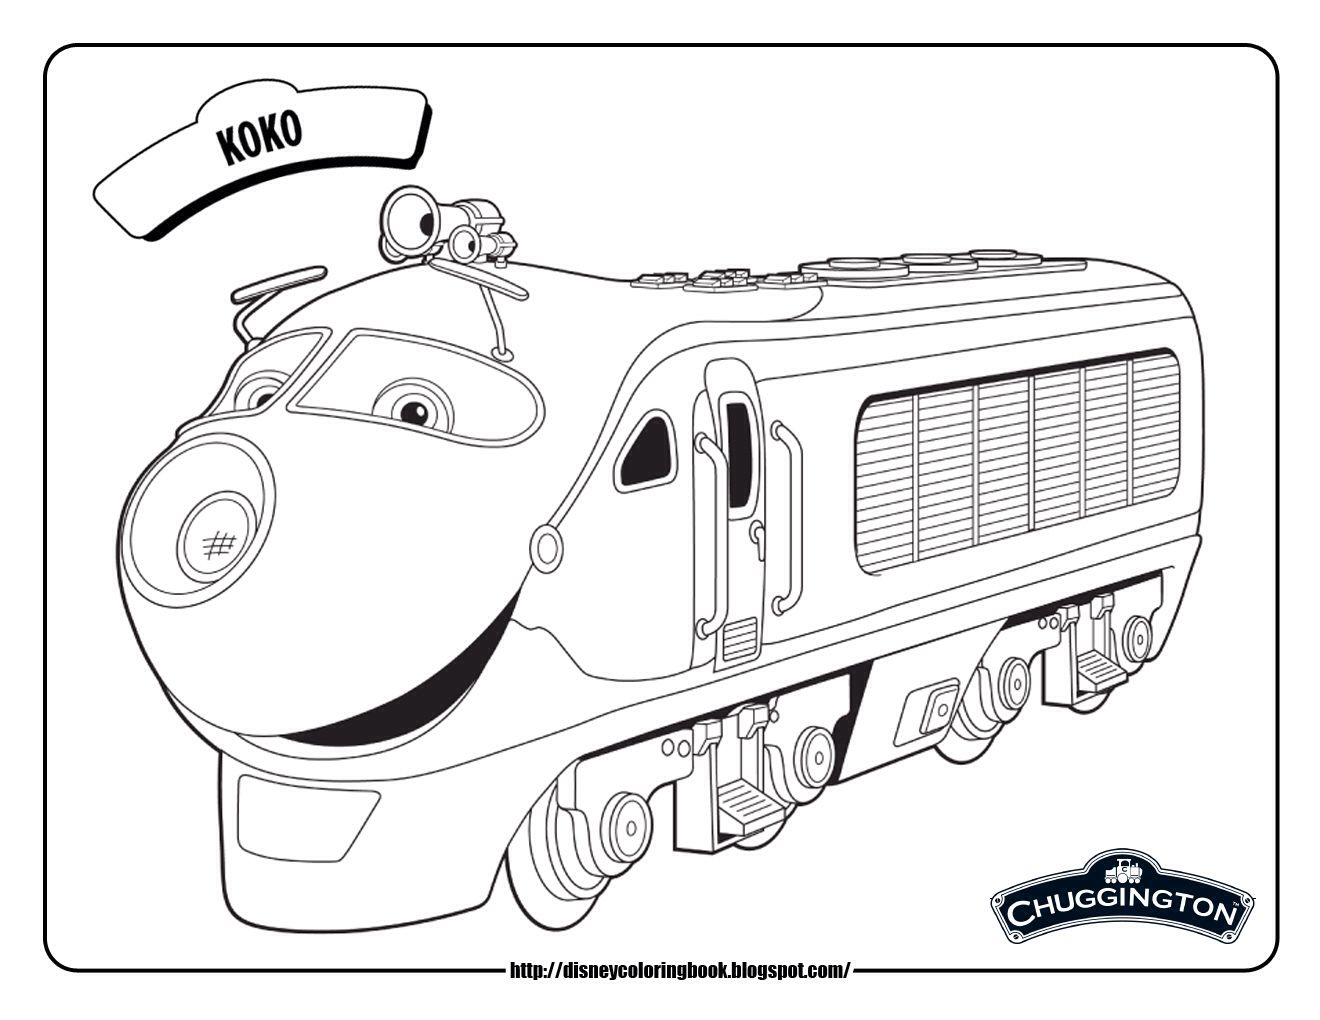 Makayla S Chuggington Birthday Image By Angie Smith Disney